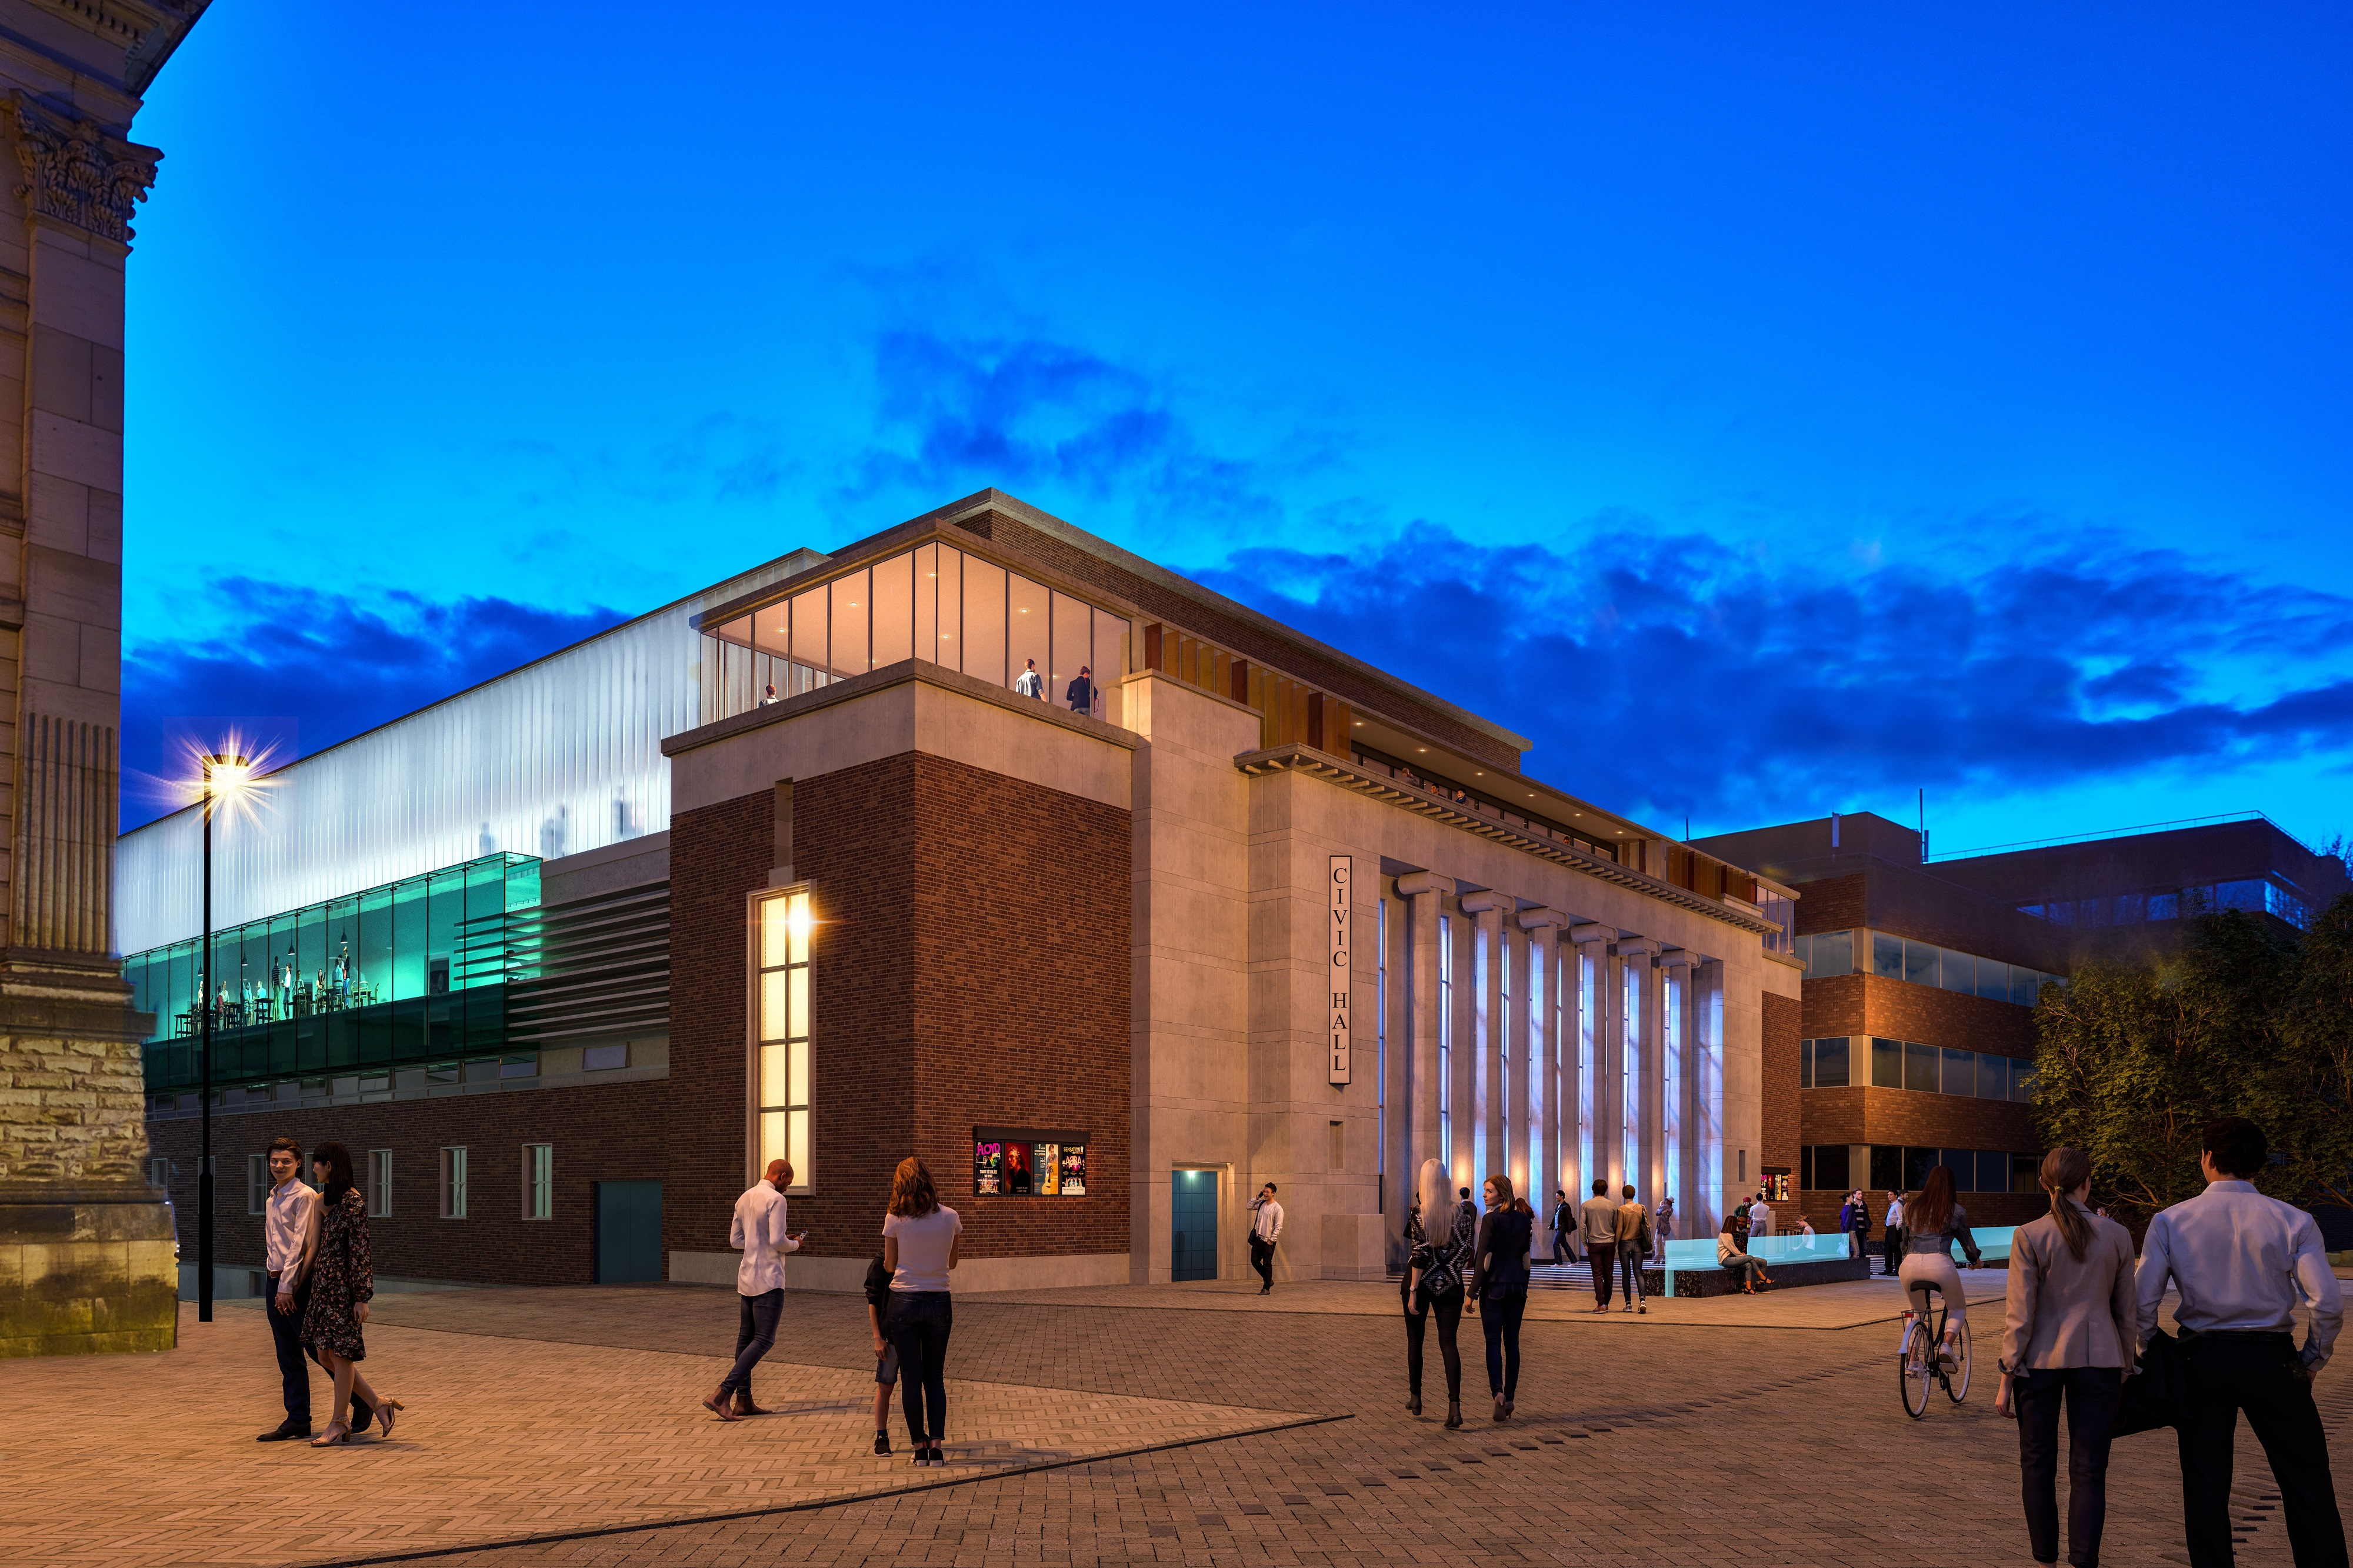 Preferred partner to deliver Civic Halls works announced